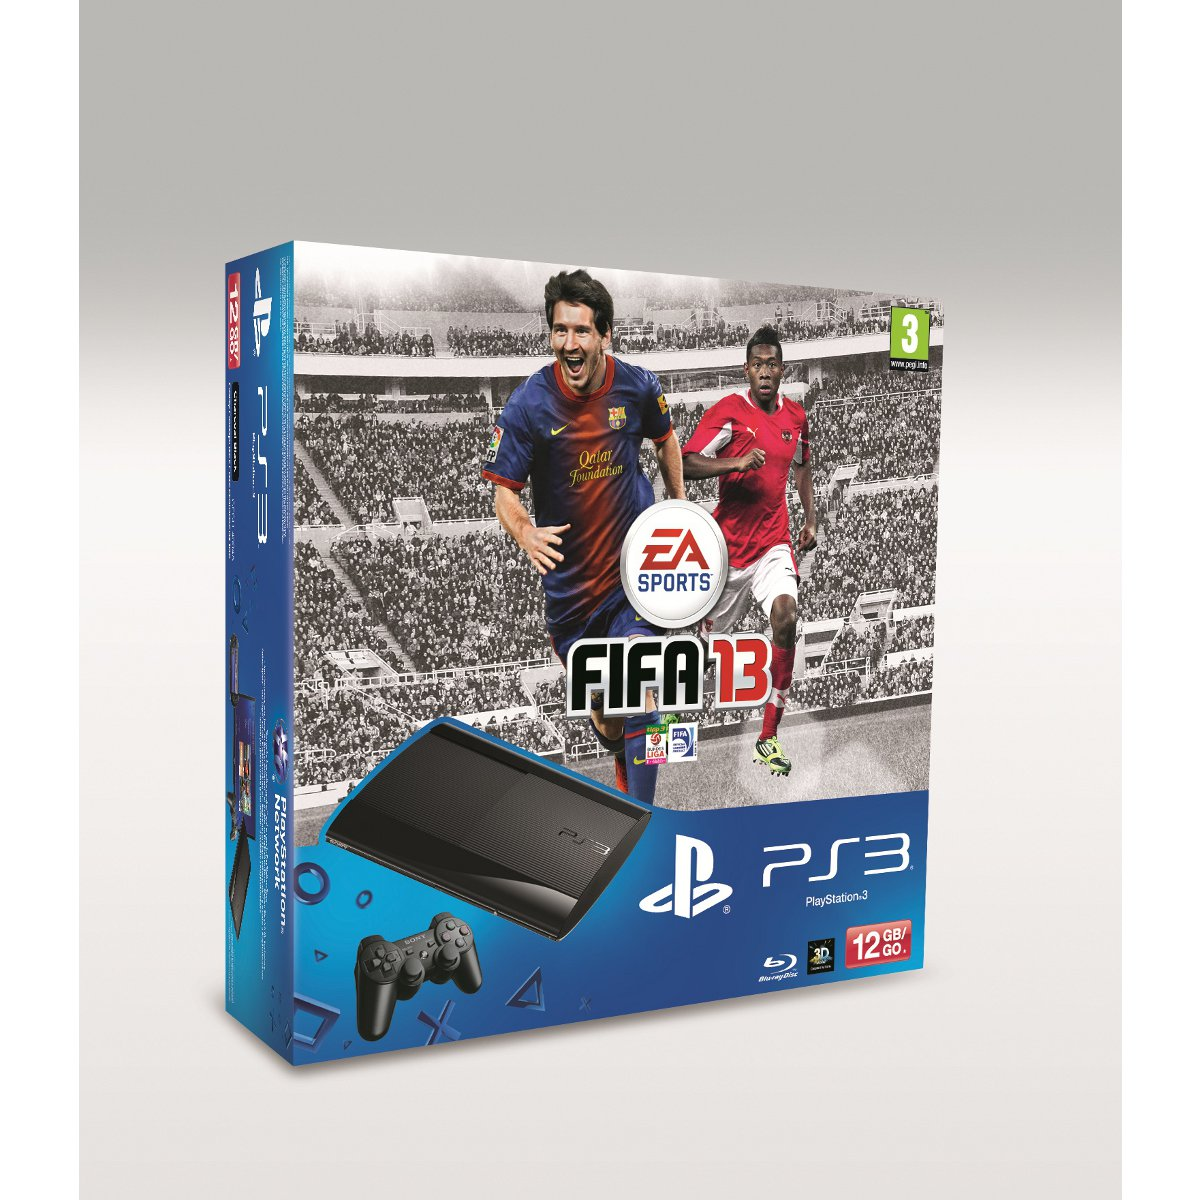 sony playstation 3 ultra slim 12 go fifa 13 pack console de jeux sony interactive. Black Bedroom Furniture Sets. Home Design Ideas